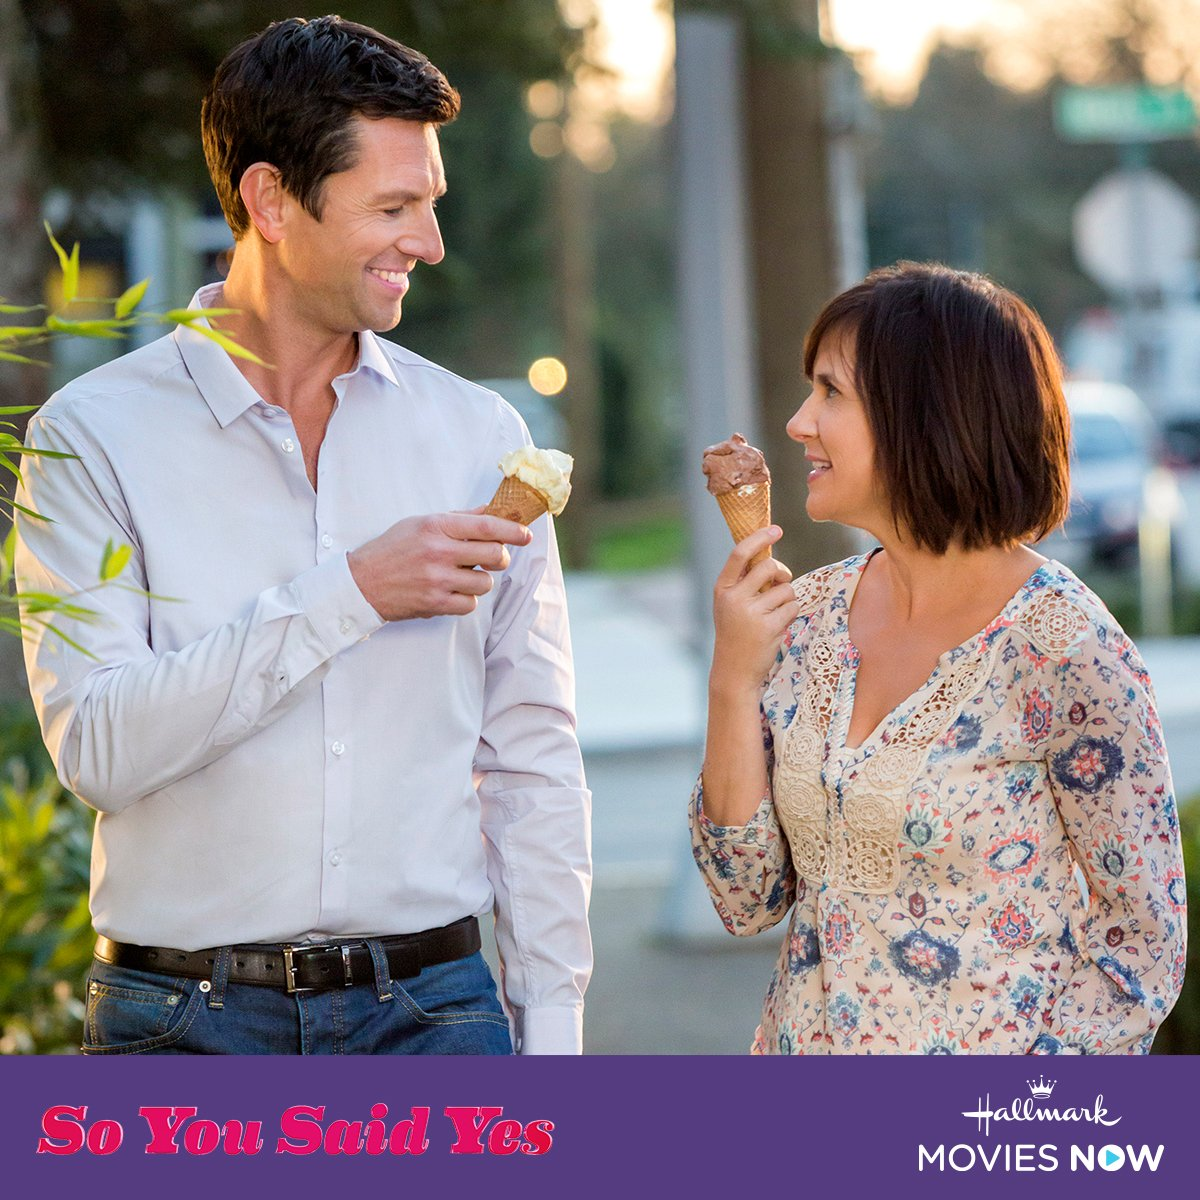 When the owner of a bridal shop (@Kellie_Martin) falls in love with the son of her chief competitor, she must fend off the woman's attempts to sabotage the relationship.  Watch #SoYouSaidYes and tell us what have been the biggest obstacles in your relationships.